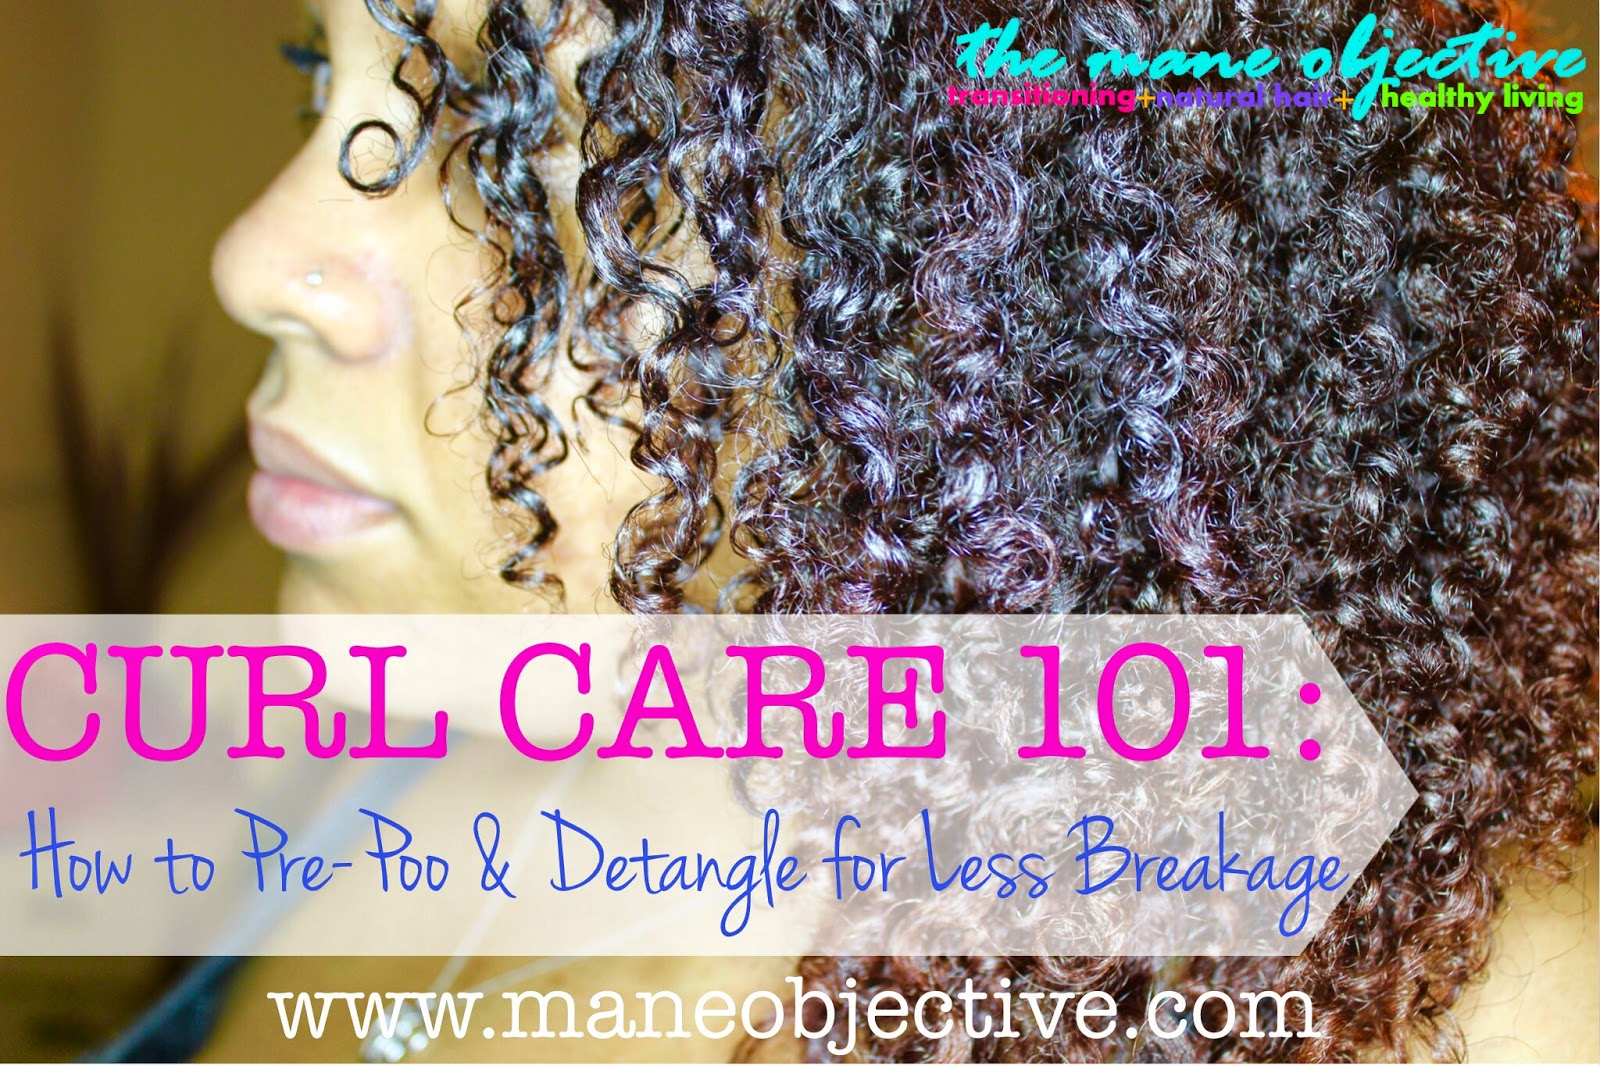 curl-care-101-pre-poo-detangle-natural-hair